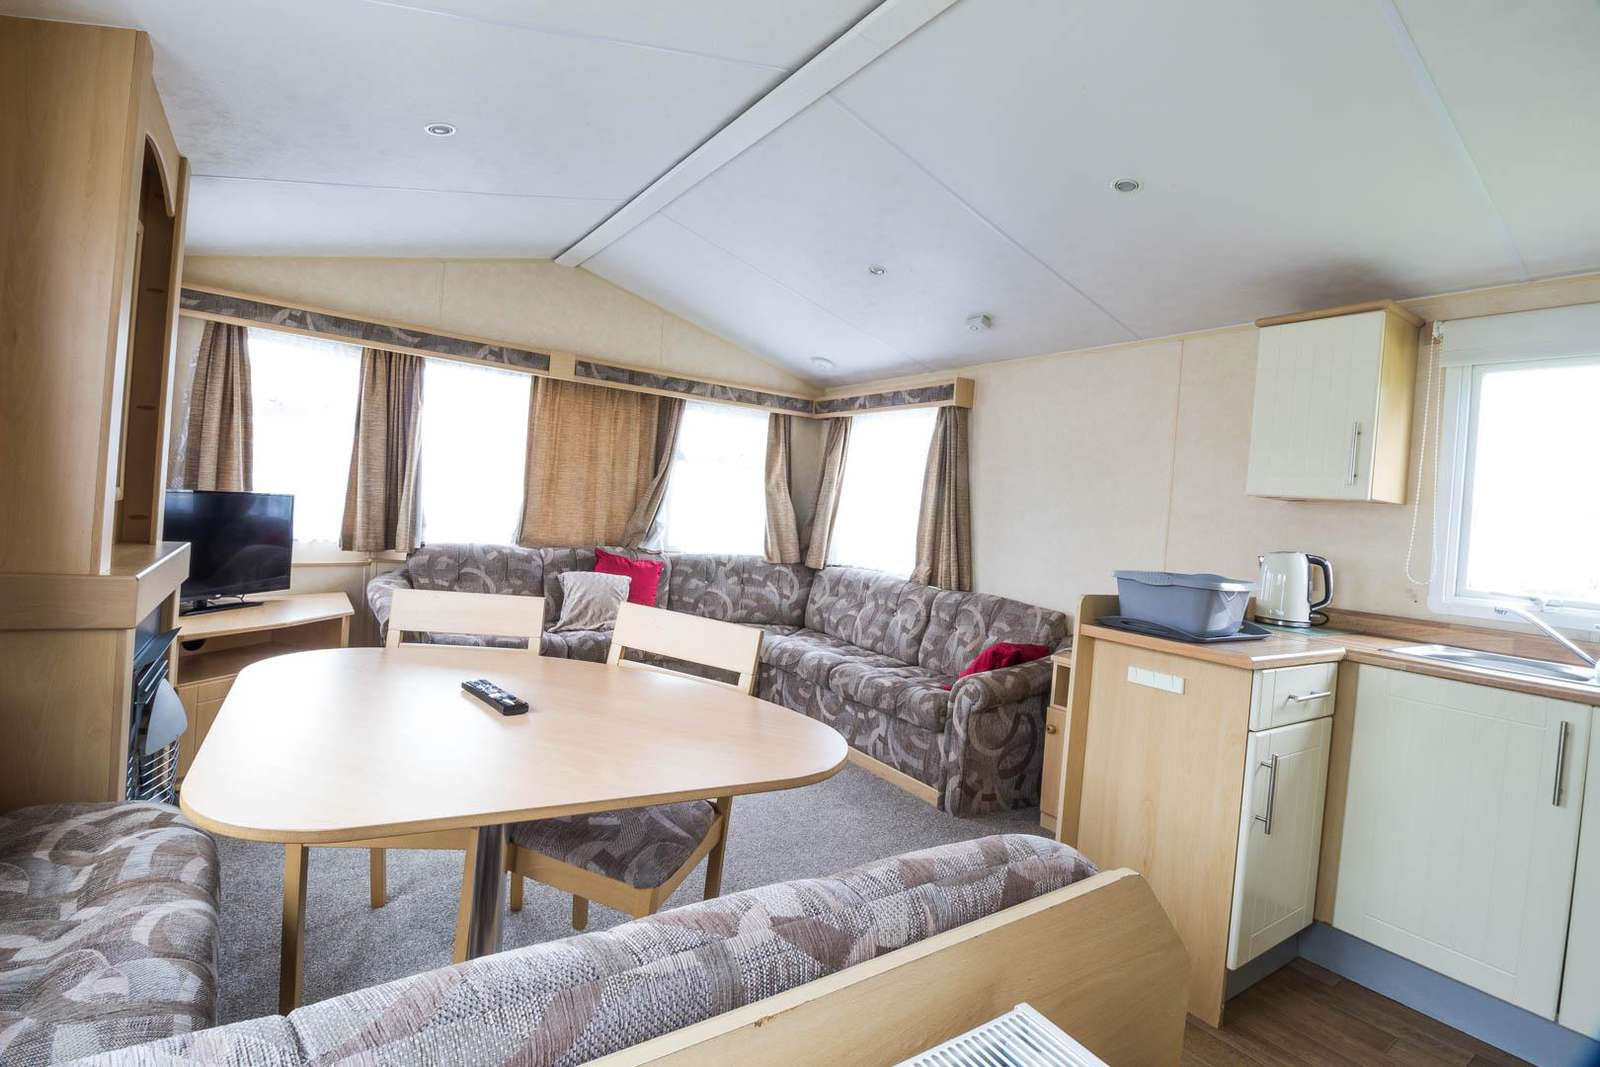 70704C – Cherry, 3 bed, 8 berth caravan with D/G & C/H. Ruby rated. - property